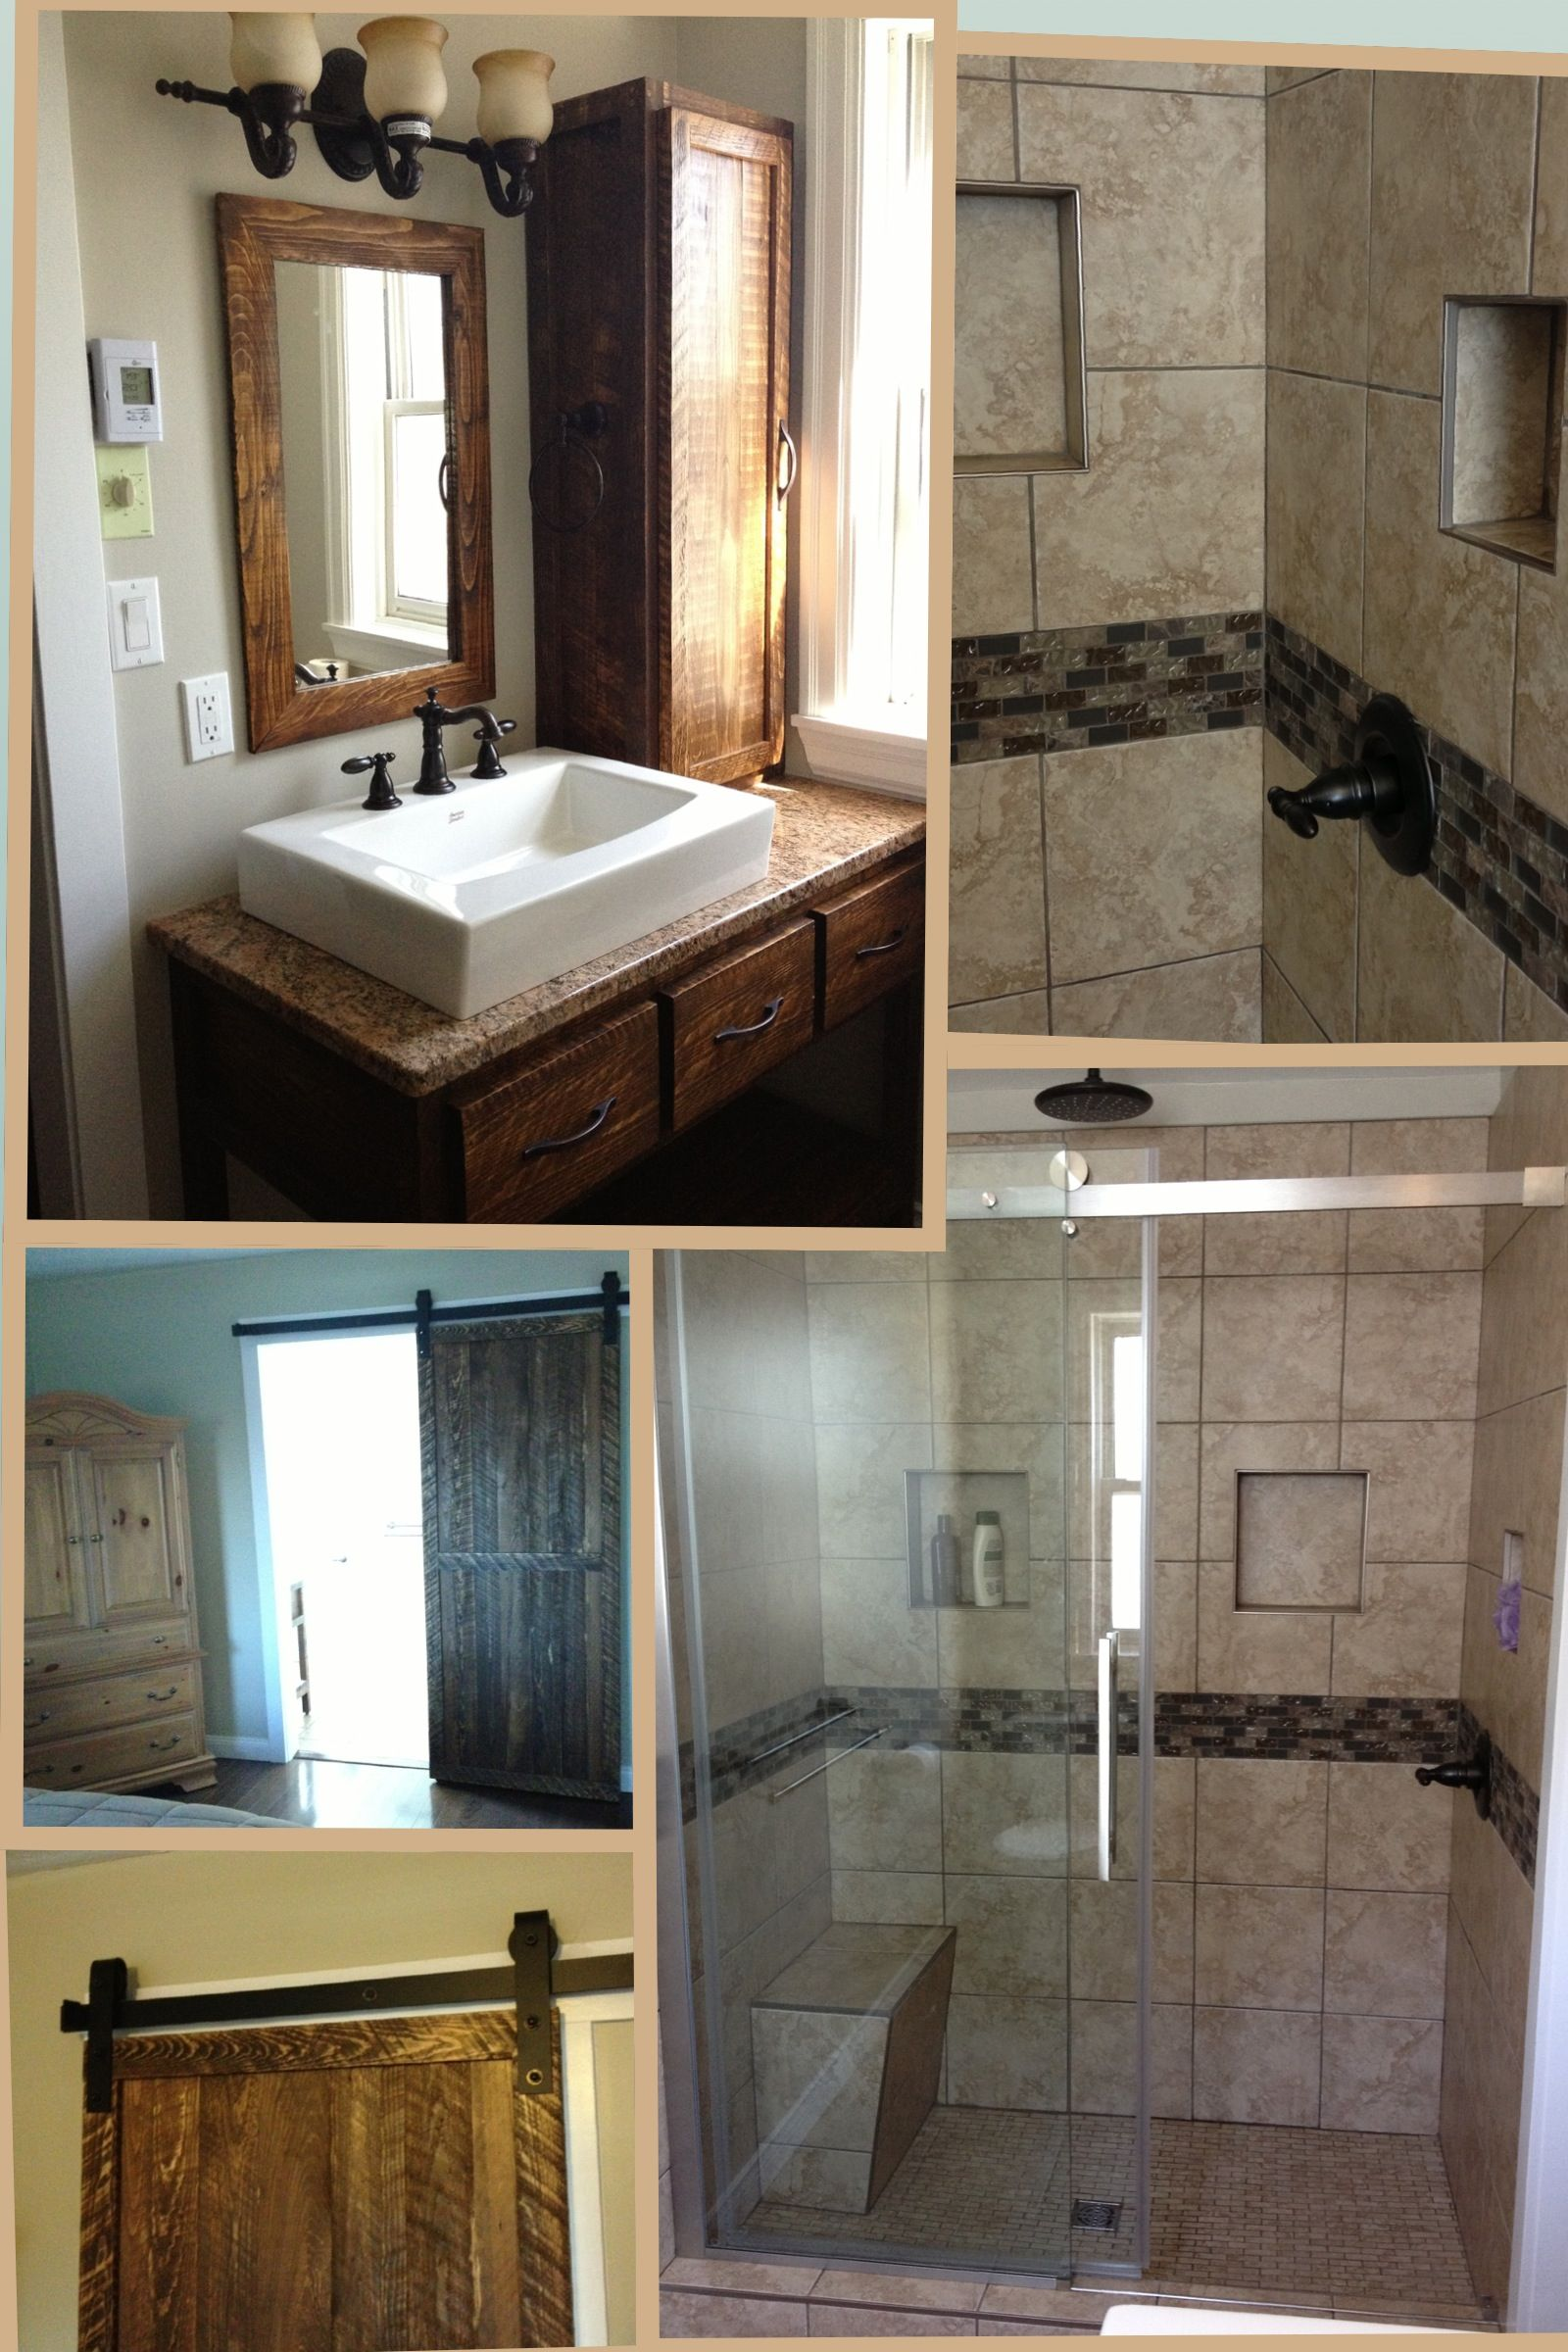 Bathroom Collage With Tiled Shower Glass Doors Custom Rustic Vanity By Exin Renovations